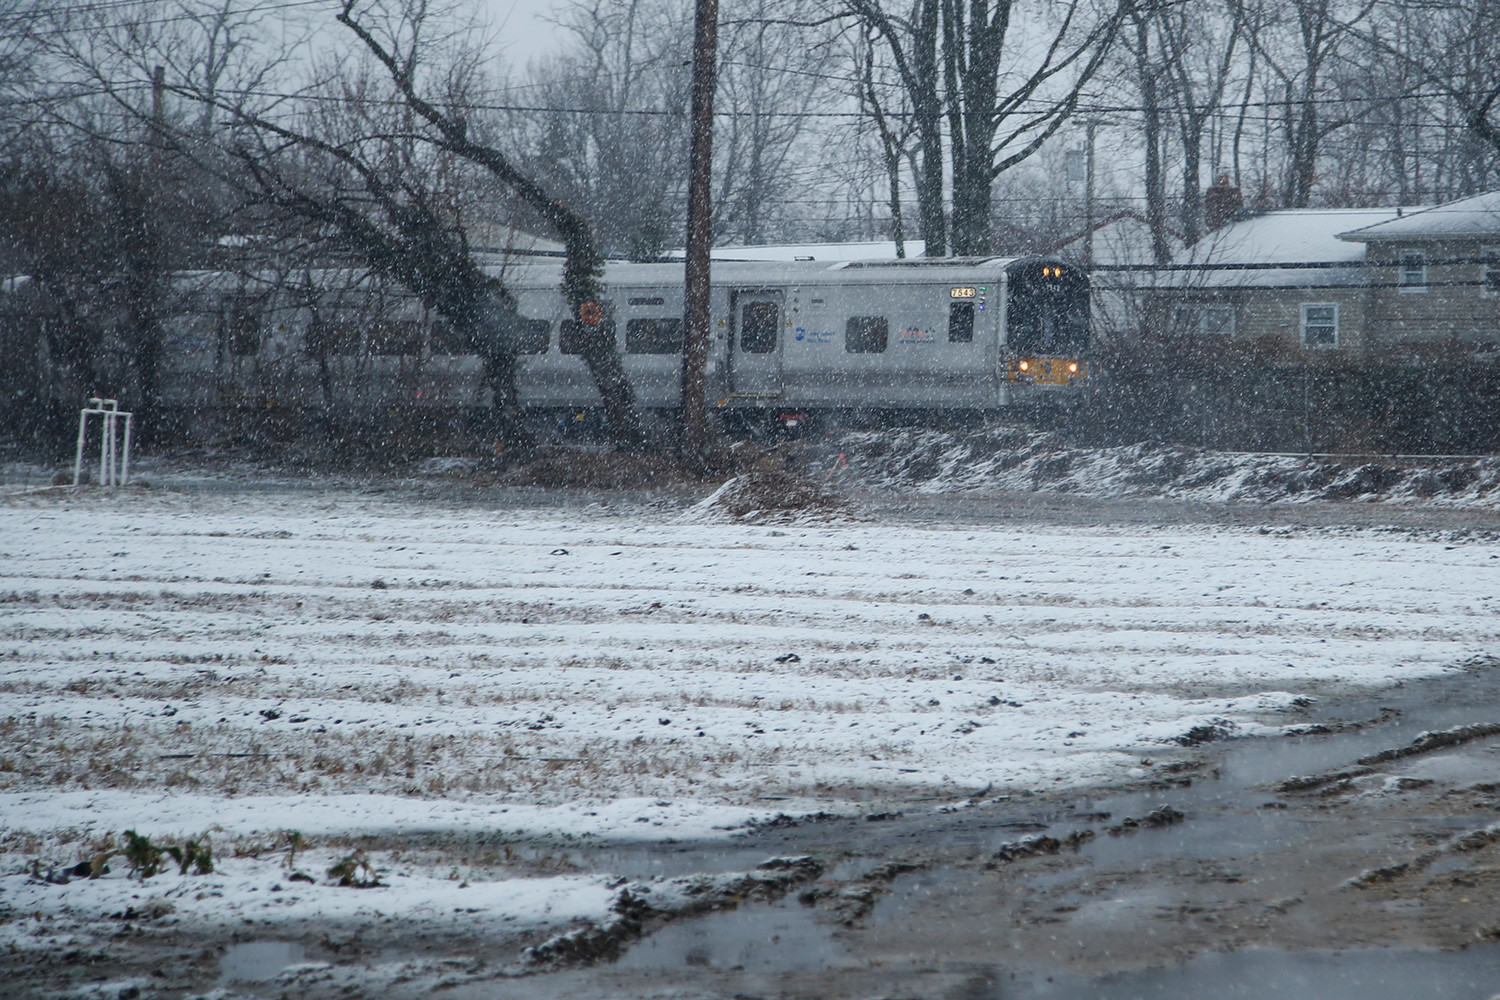 The West Hempstead branch of the Long Island Railroad travels west past Crossroads Farm in Malverne.